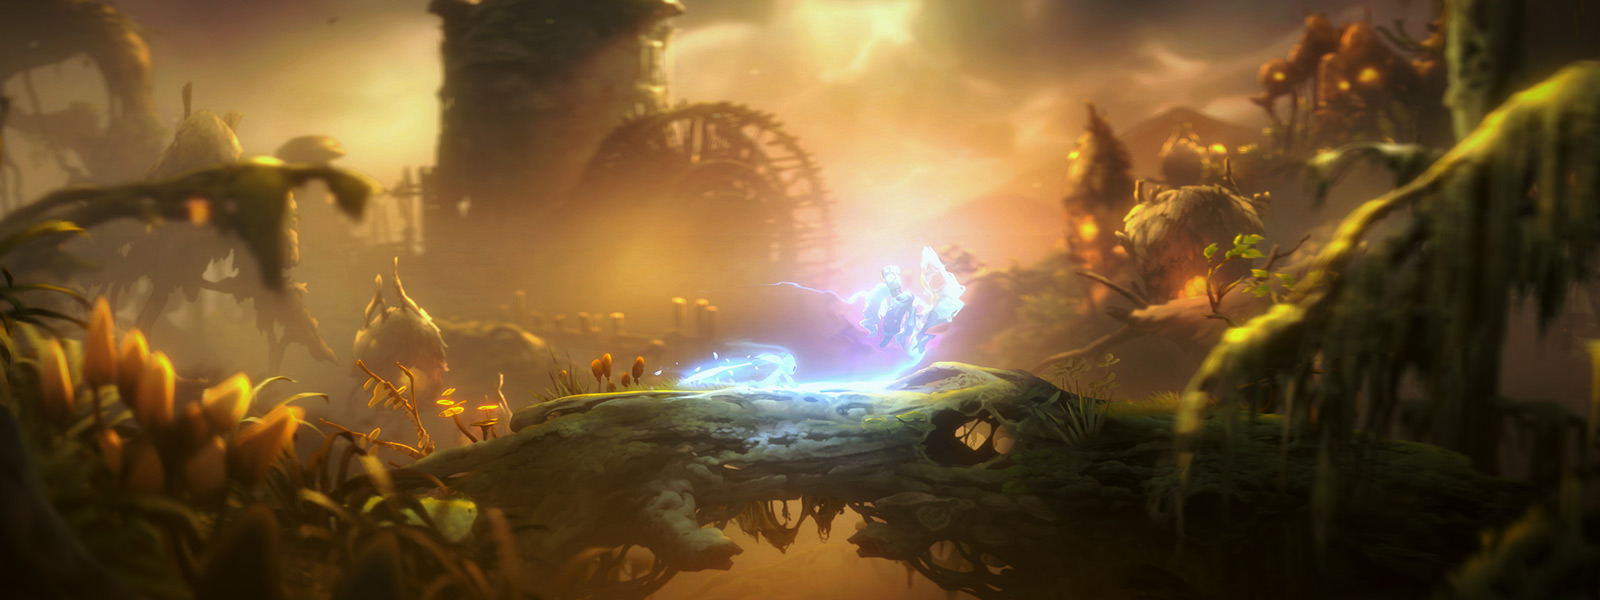 Captura de tela de Ori and the Will of the Wisps